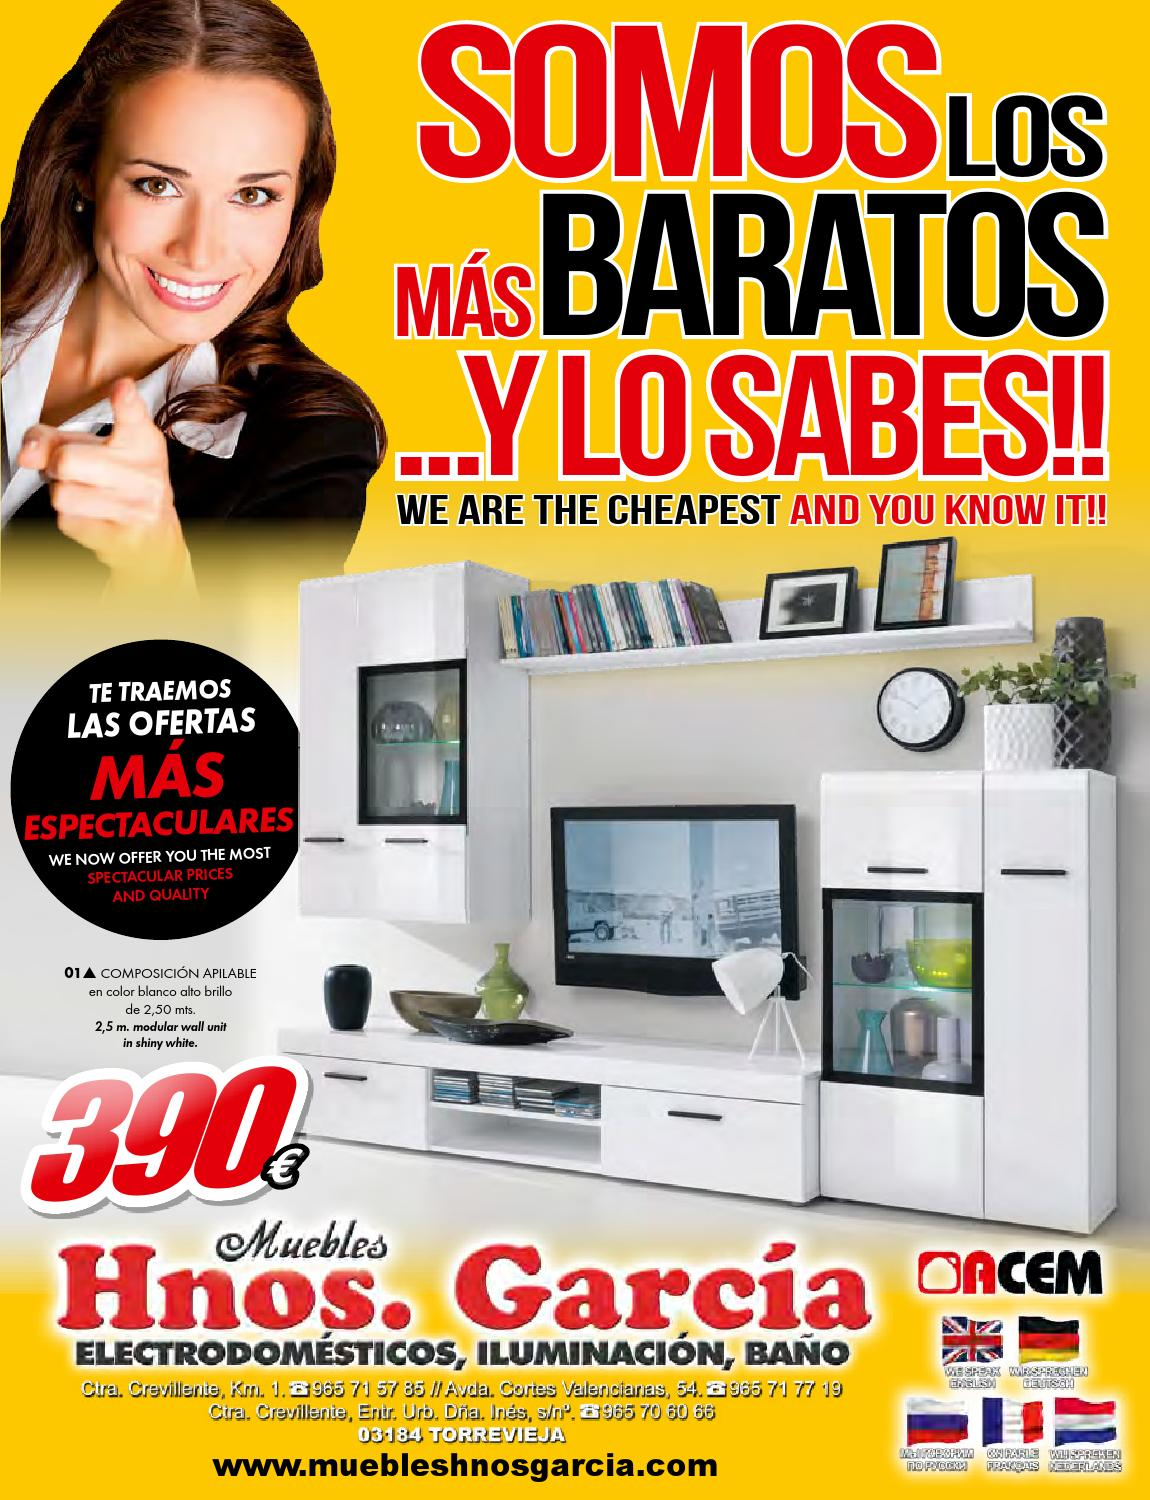 Muebles Hermanos Garcia - Folleto Muebles Hnos Garc A Somos Los M S Baratos Y Lo Sabes [mjhdah]http://static.youblisher.com/publications/257/1537154/large-1537154-5.jpg